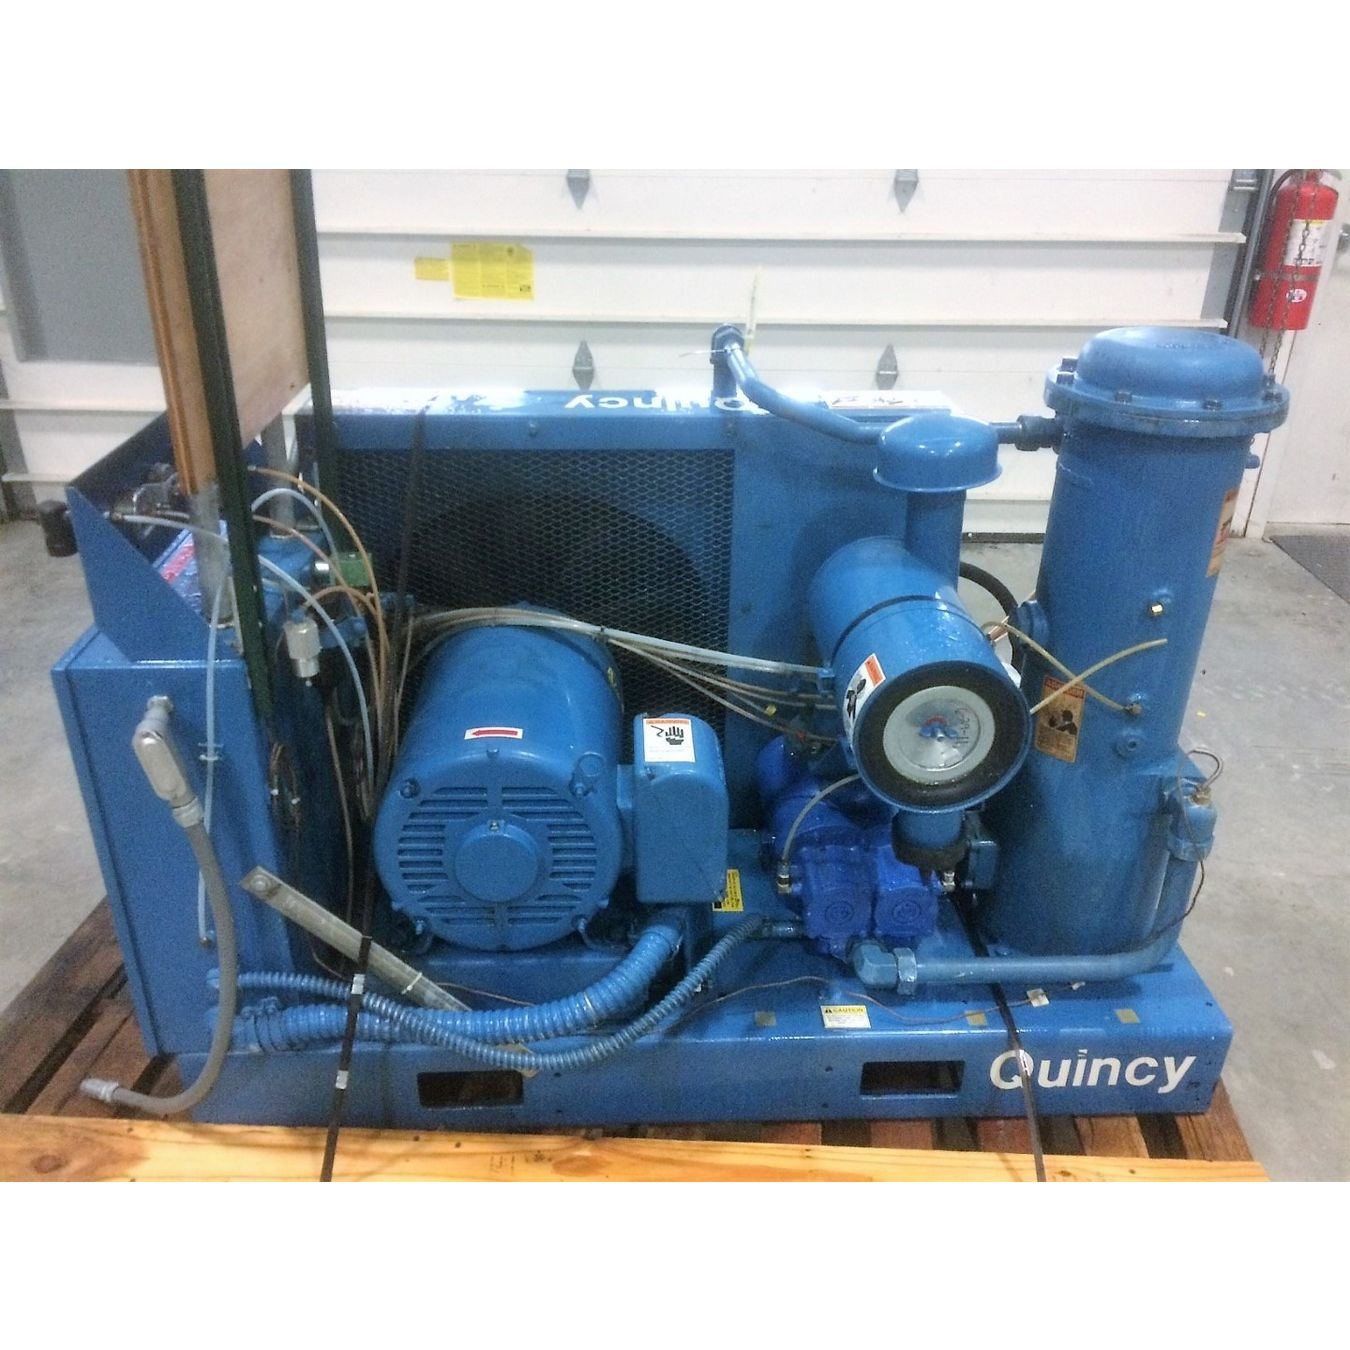 Rotary Screw Compressor : Used hp quincy rotary screw air compressor qsb series